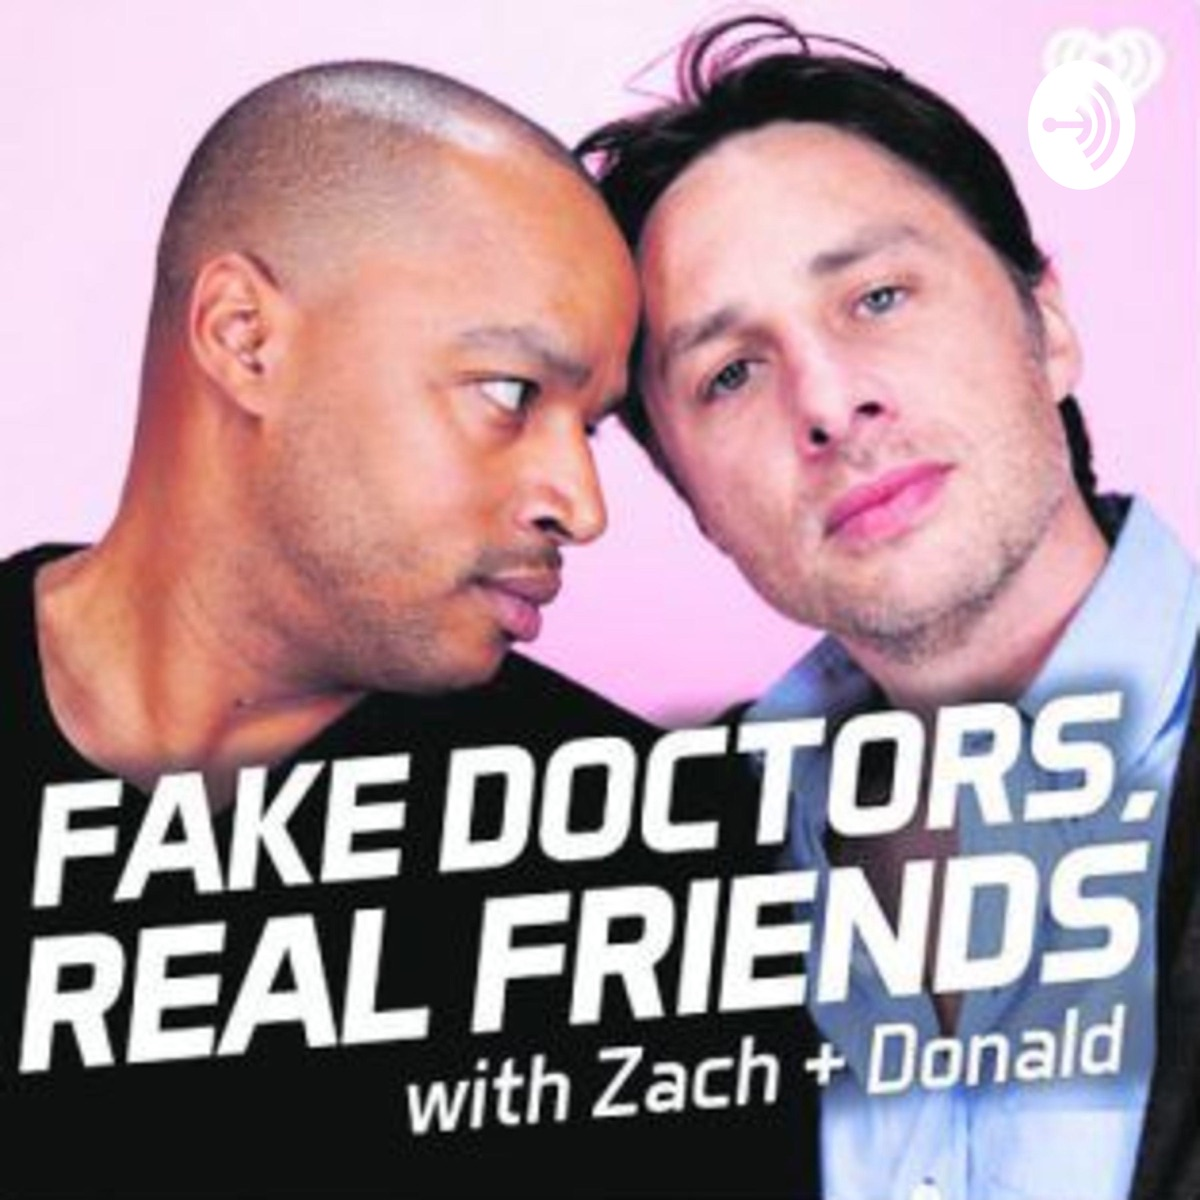 Fake Doctors Real Friends with Zach and Donald